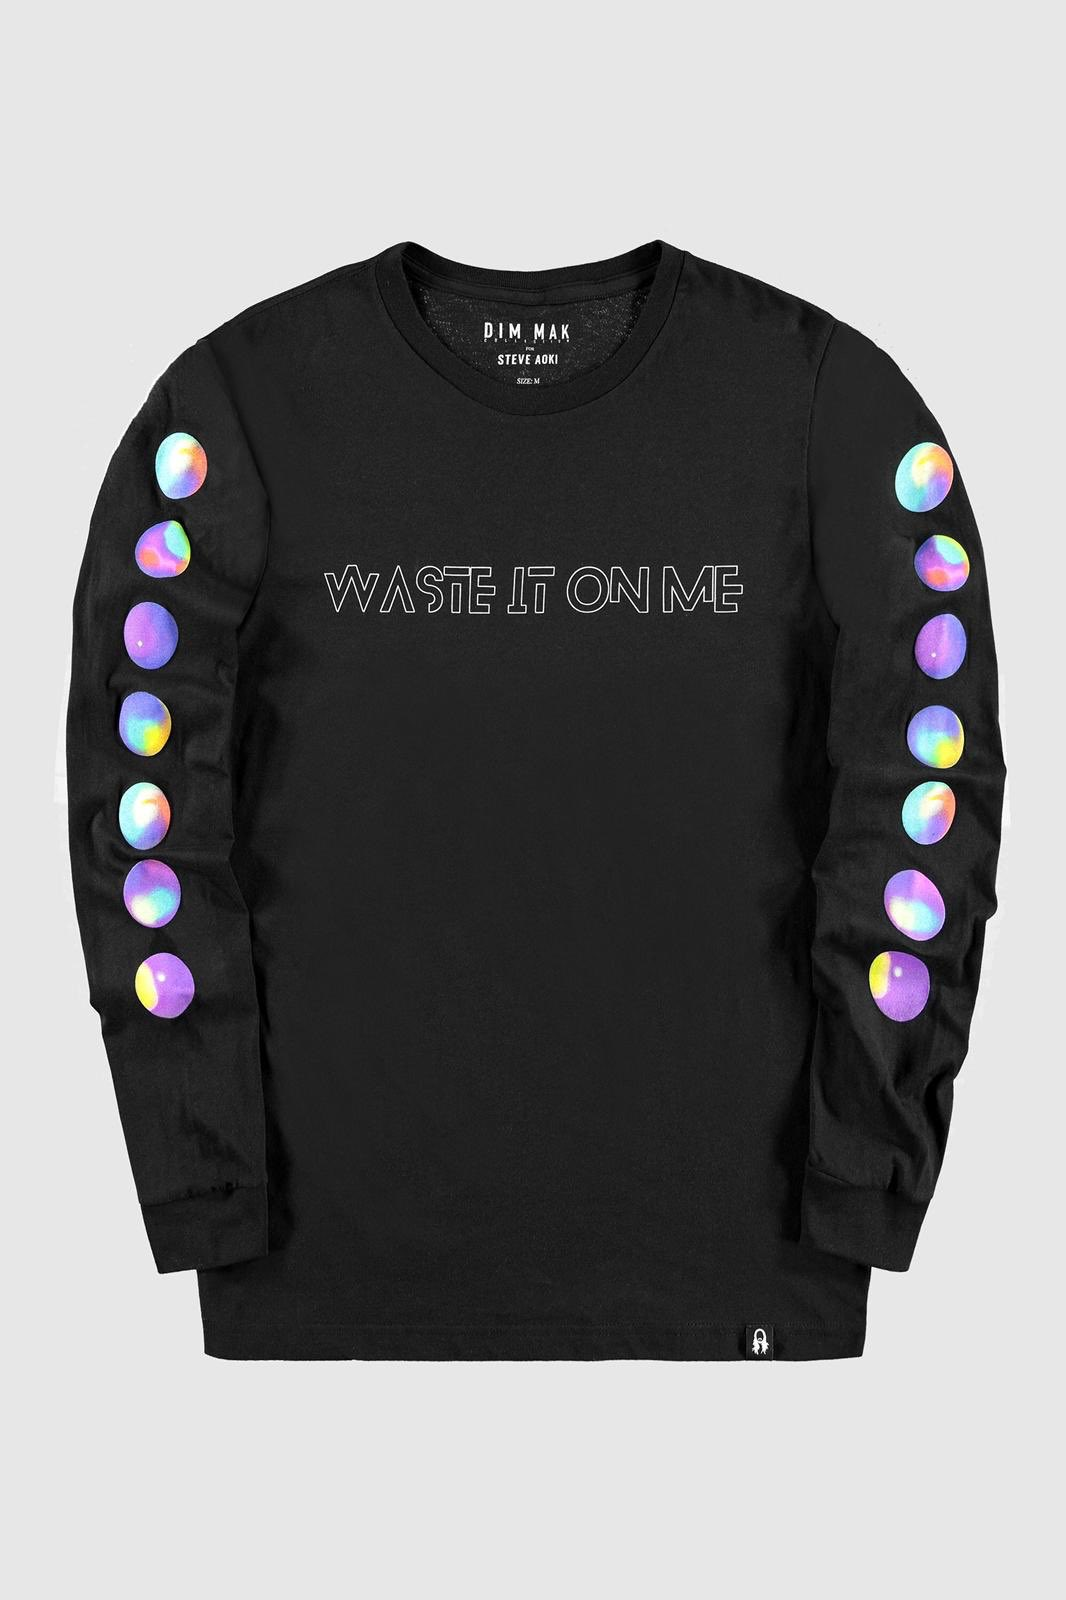 #wasteitonme longsleeve https://t.co/WN5RWjhtms https://t.co/RGTIlQDNwt